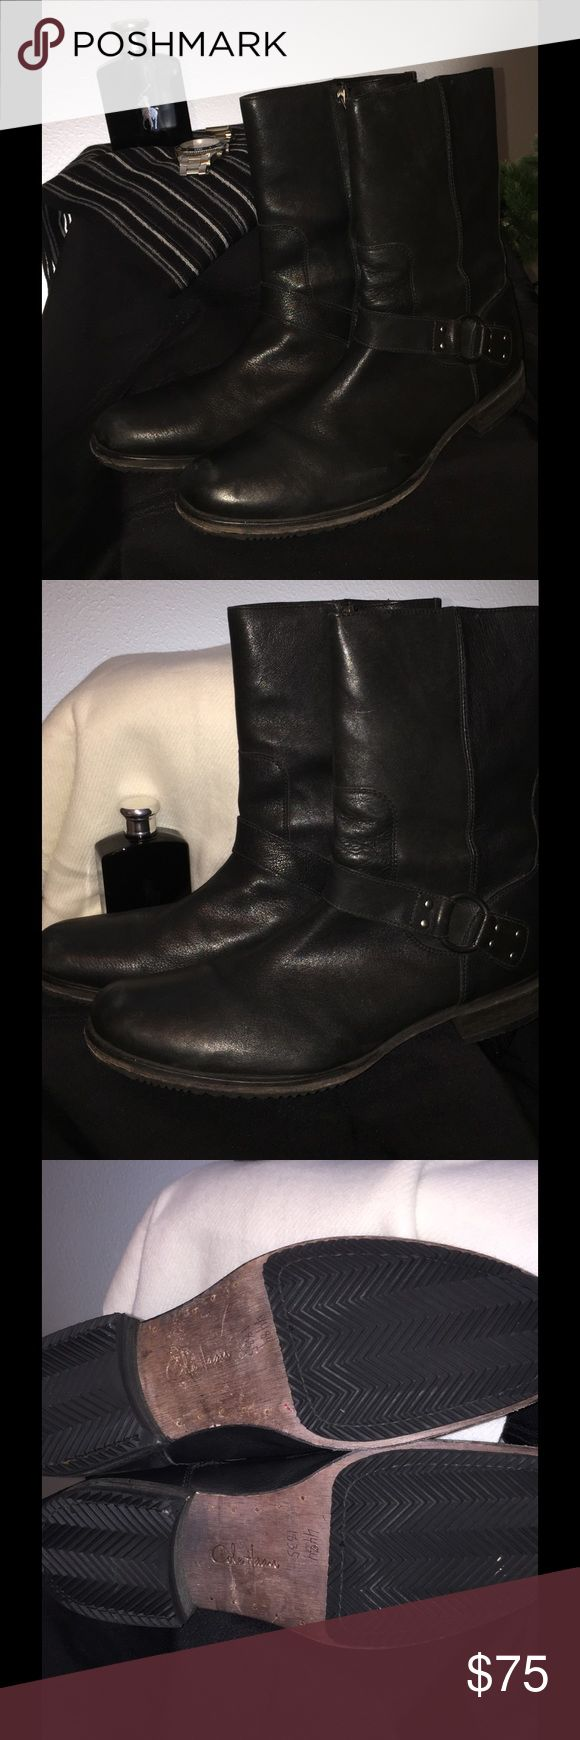 Men's Cole Haan Boots. Size 10.5 Nice soft leather barely worn. Cole Haan Shoes Boots